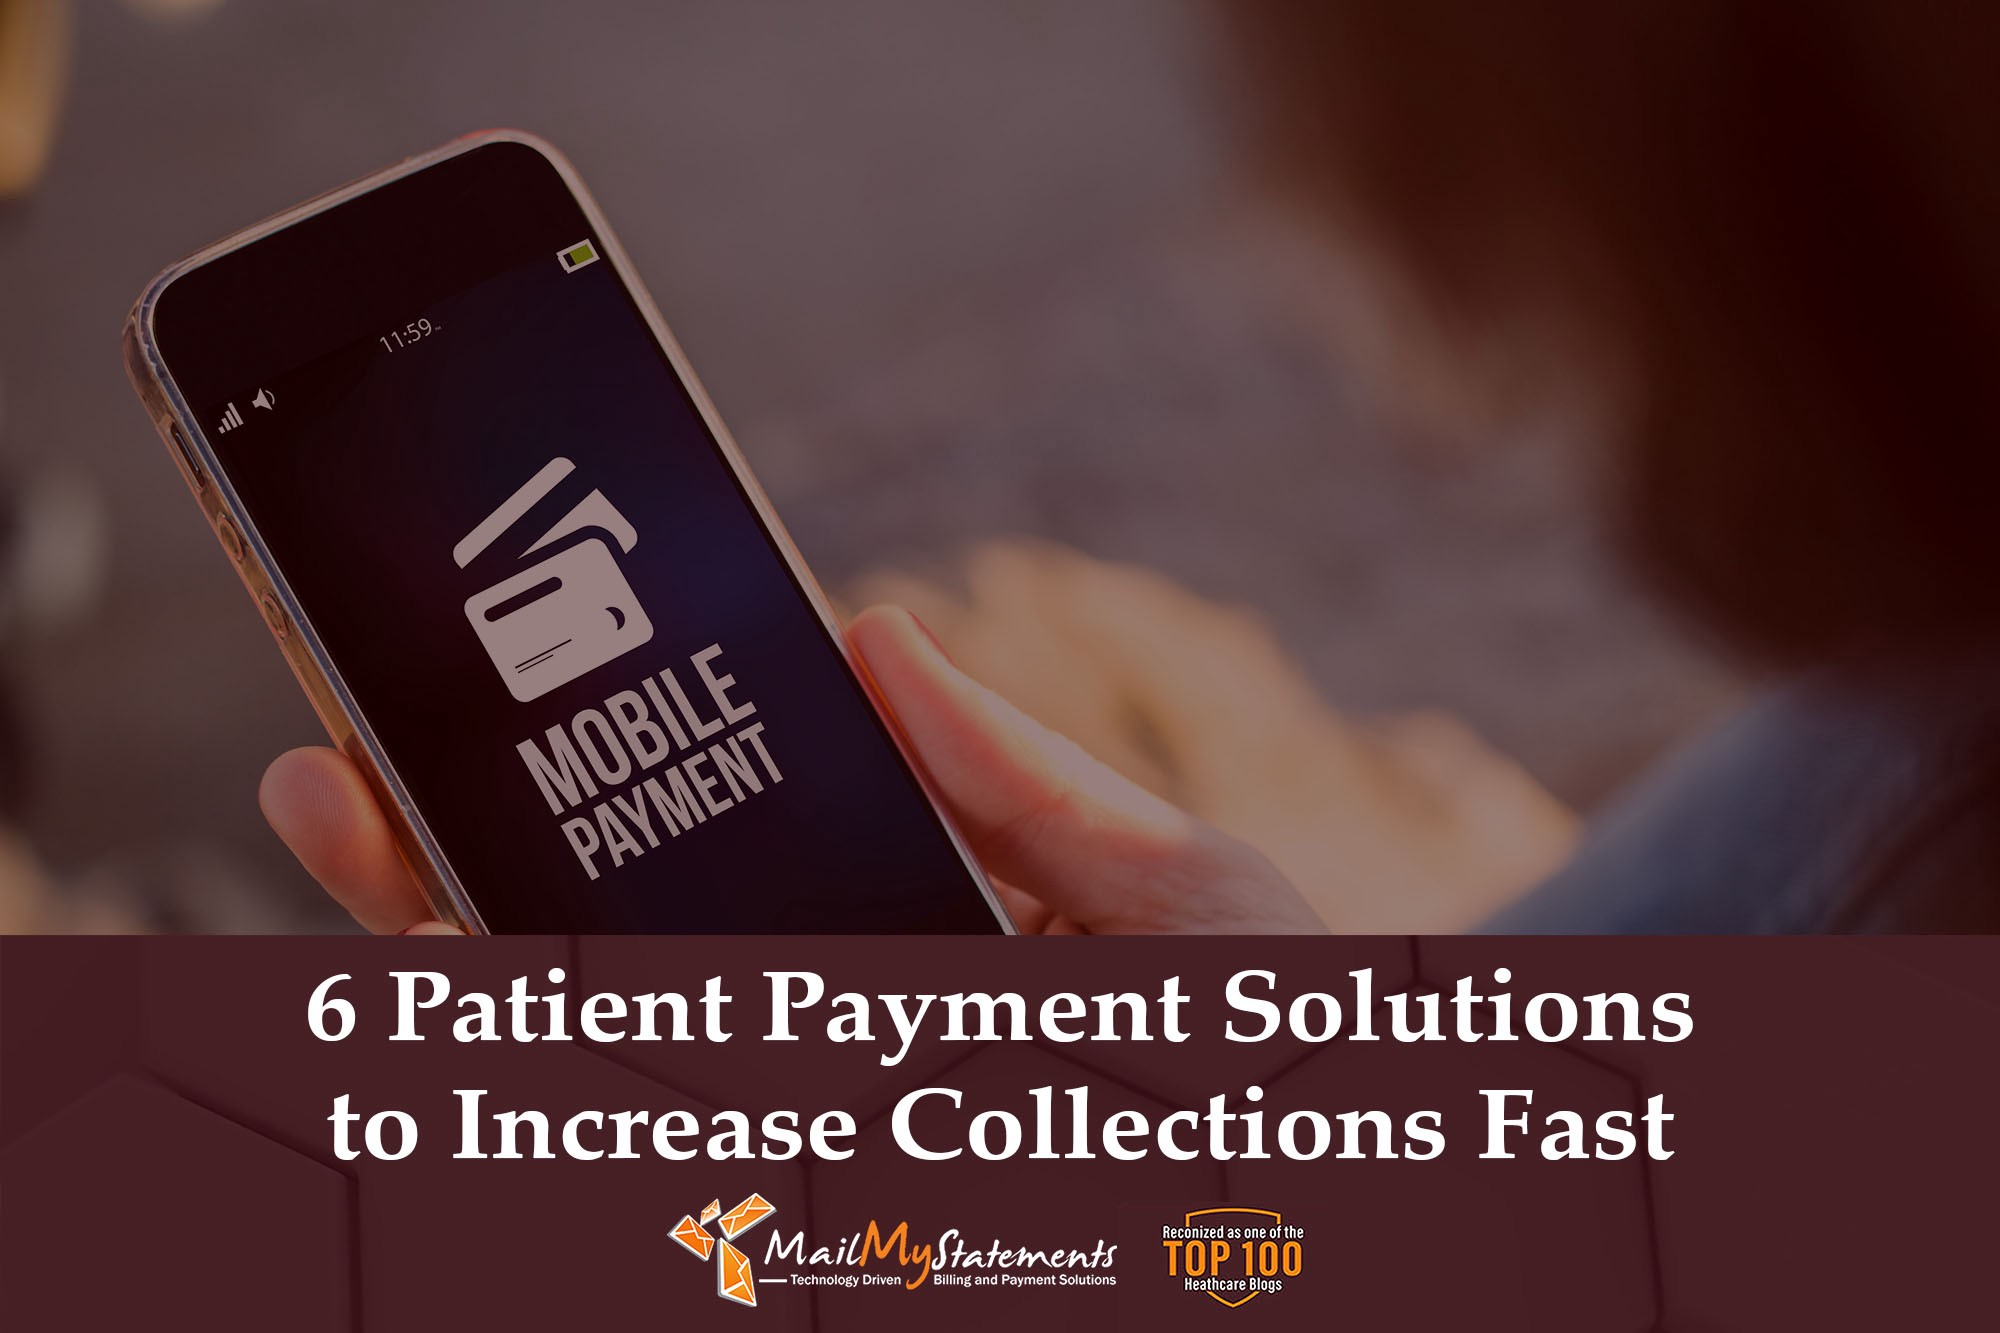 6 Patient Payment Solutions to Increase Collections Fast